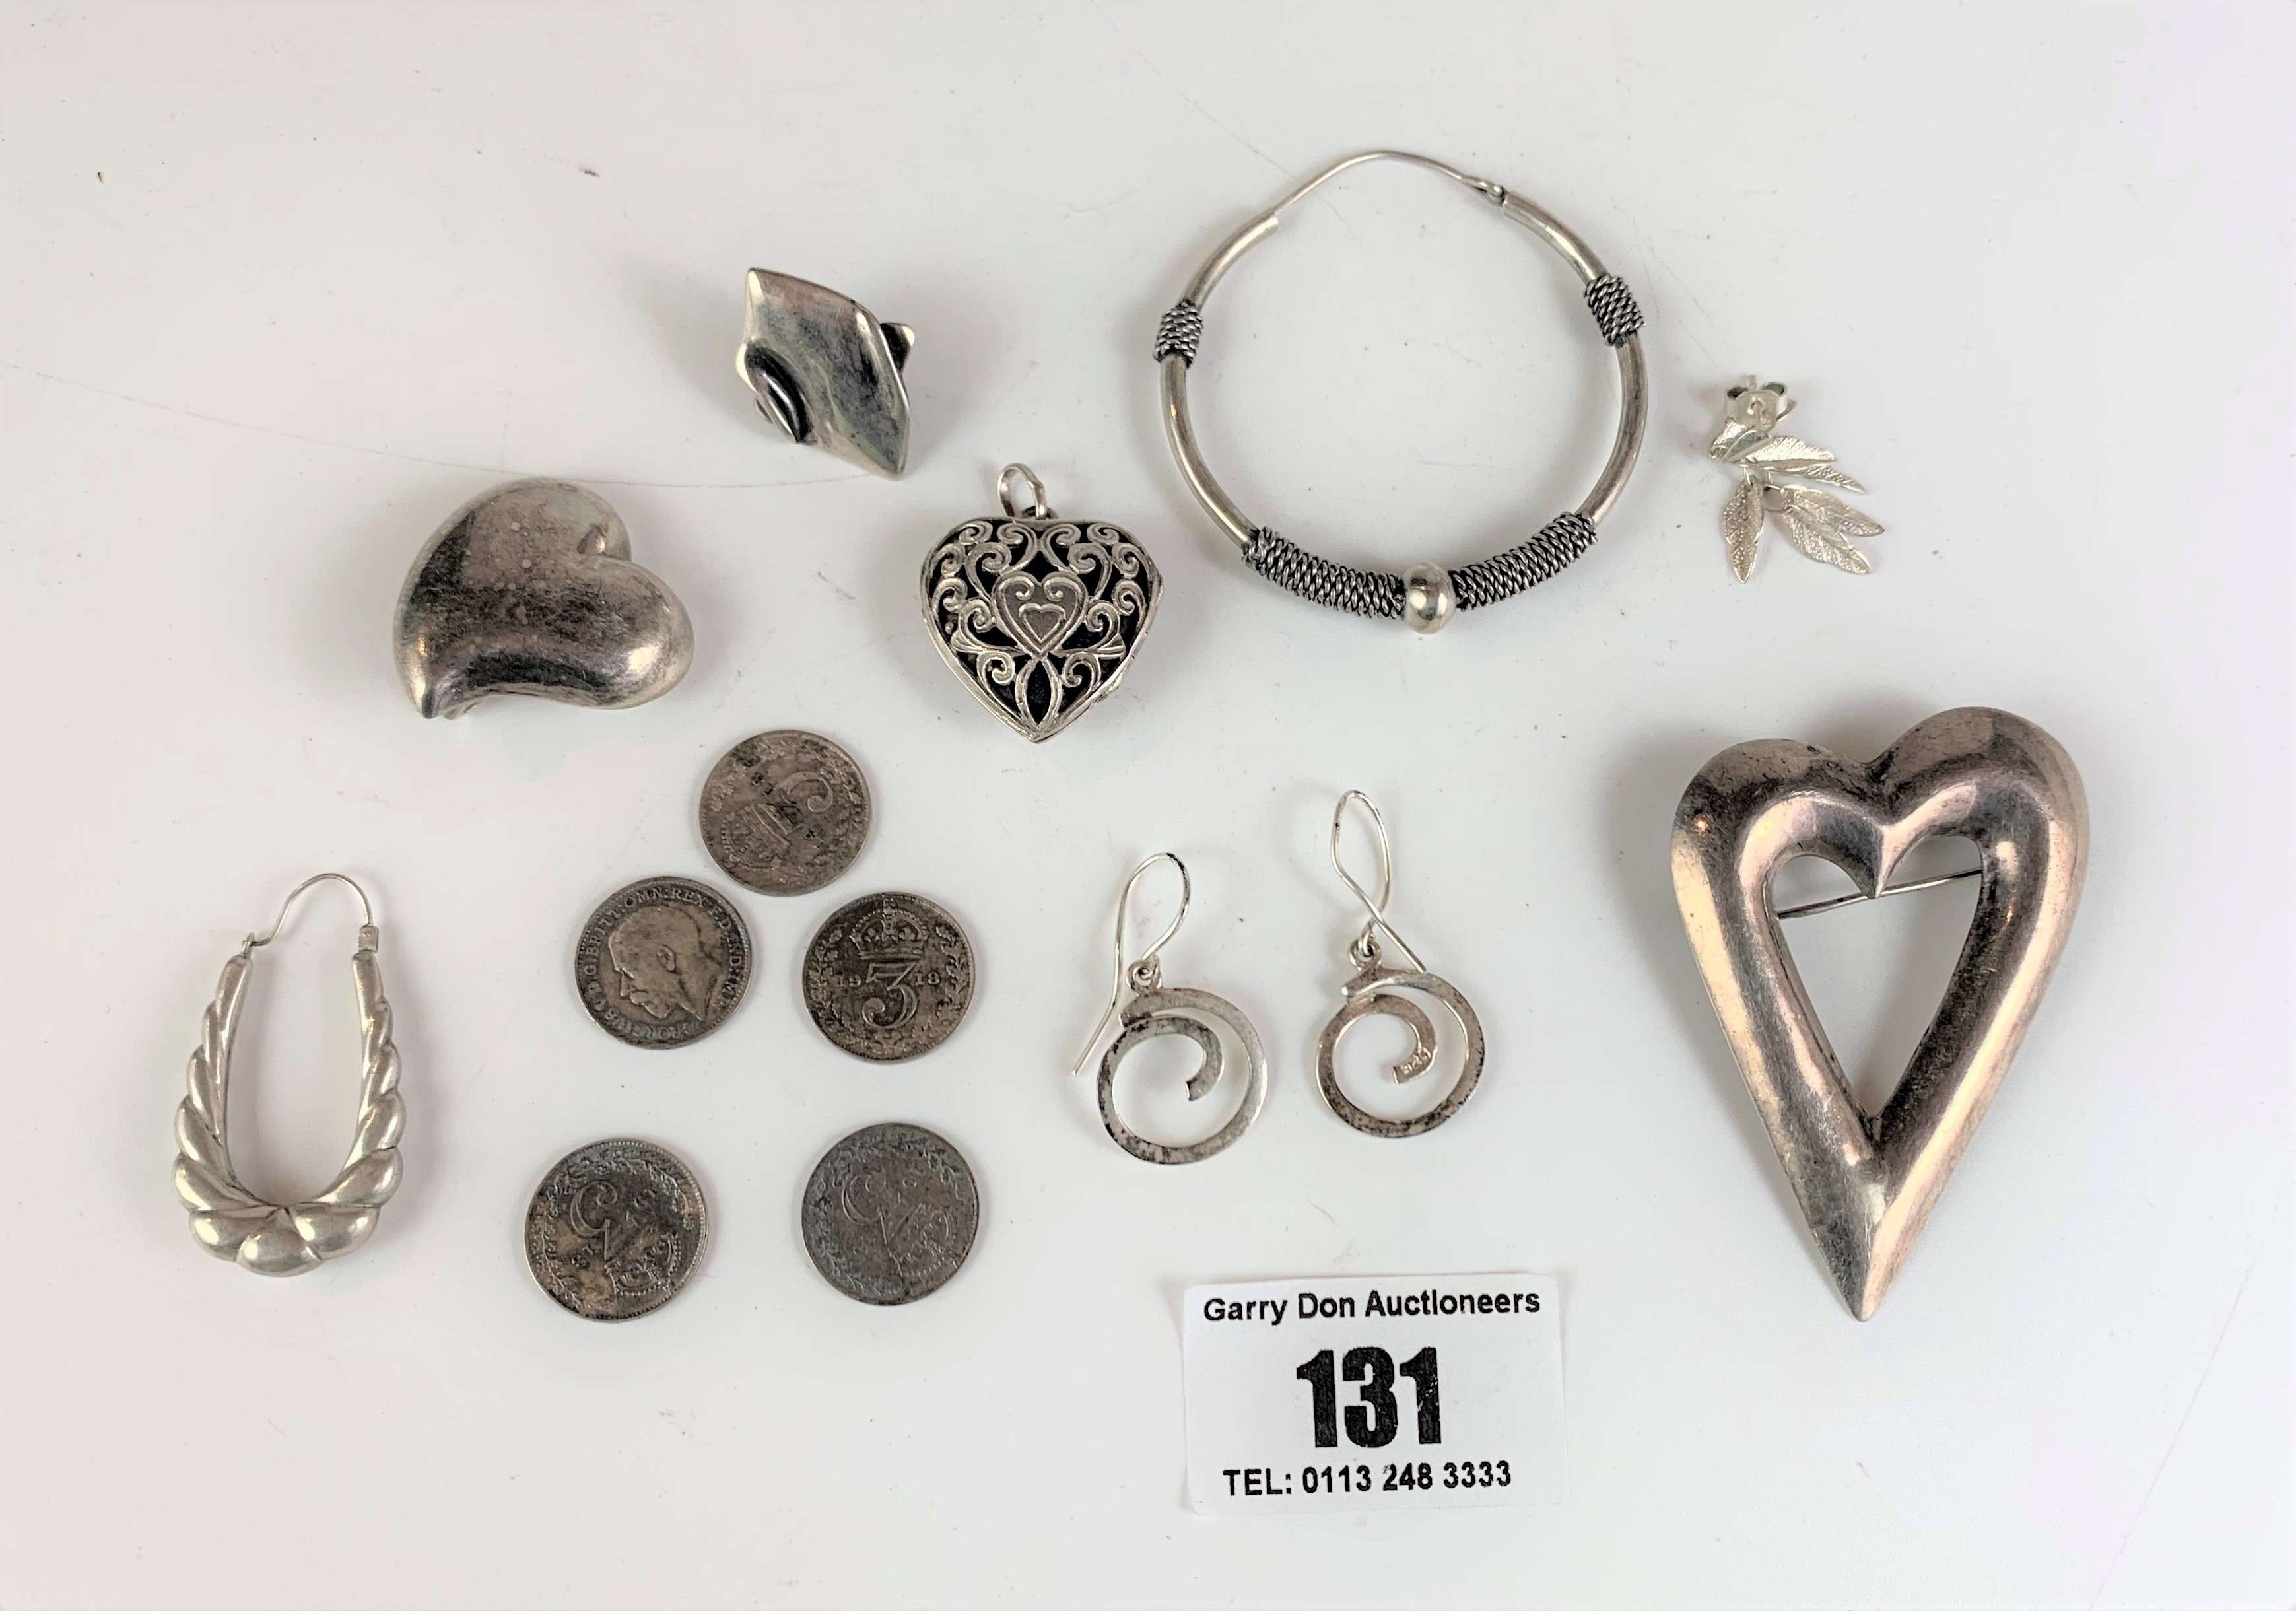 Assorted silver jewellery and coins, total w: 1.3 ozt